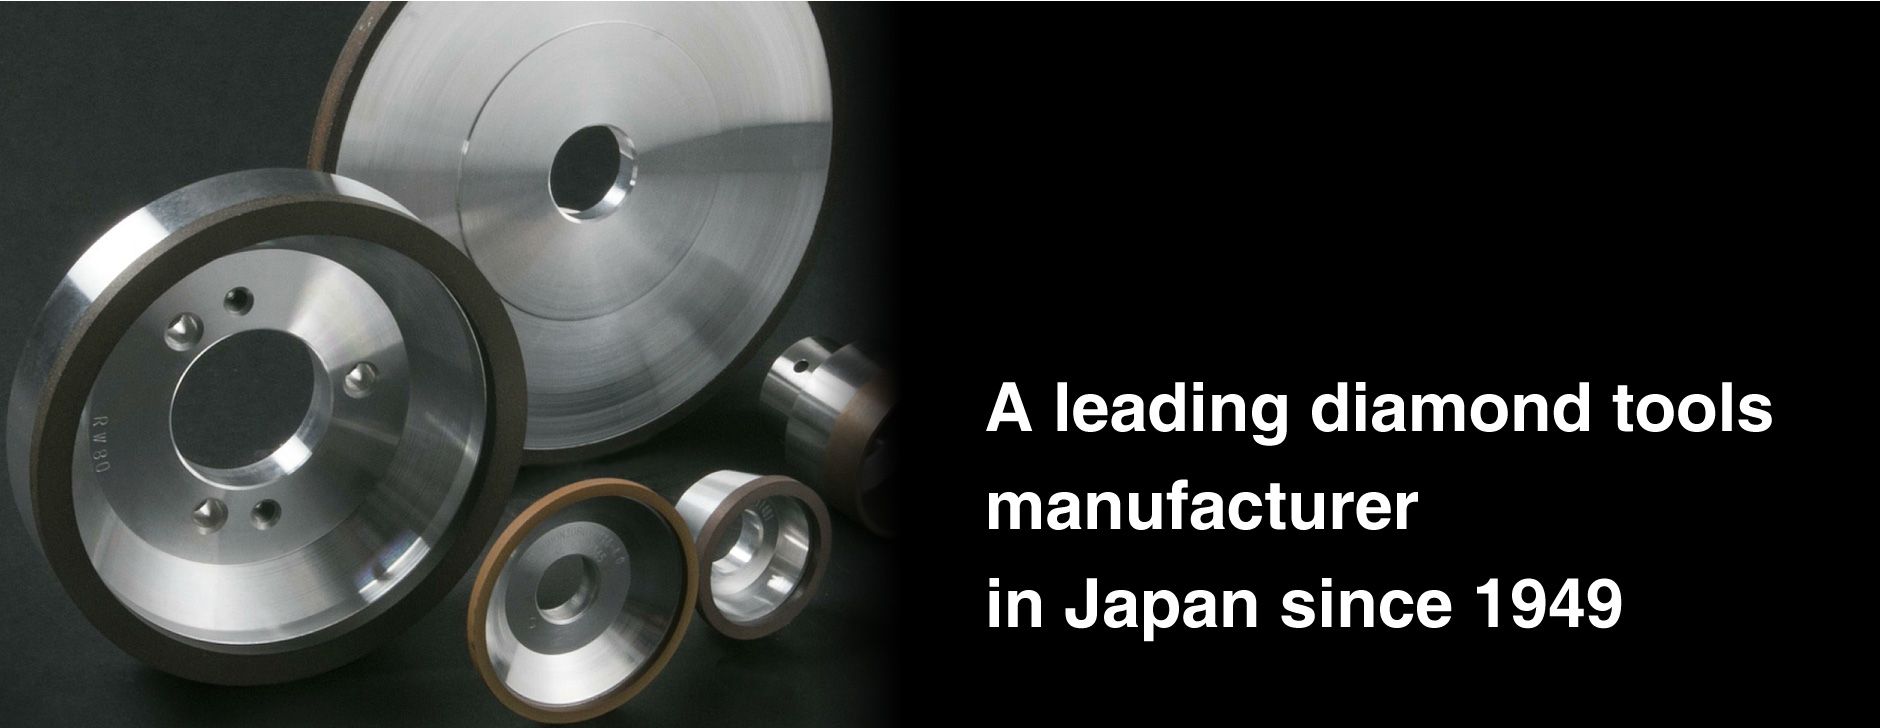 A leading diamond tools manufacturer in Japan since 1949